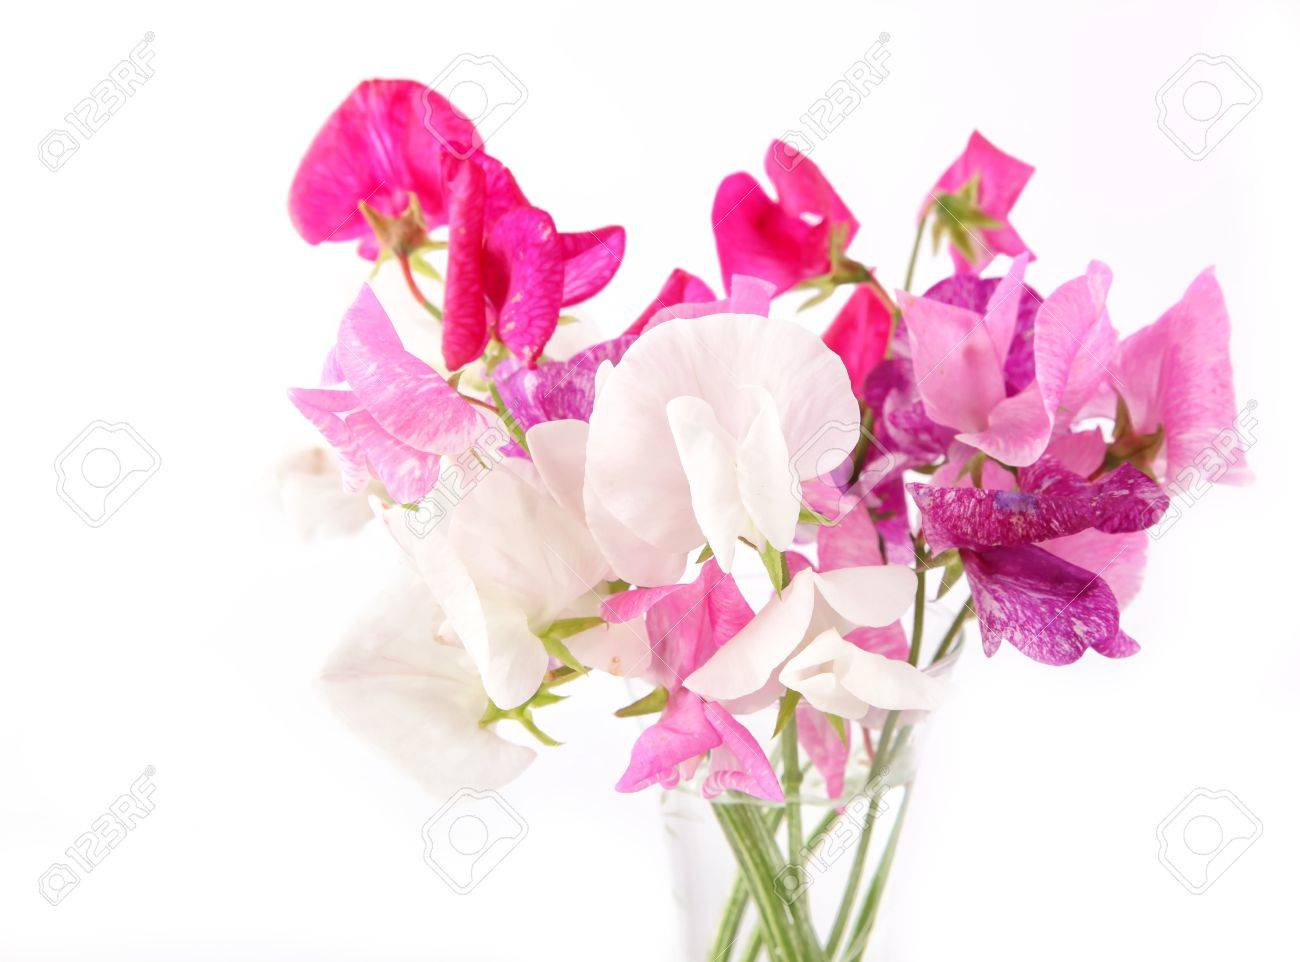 Sweet pea flowers in a glass vase. - 10644317